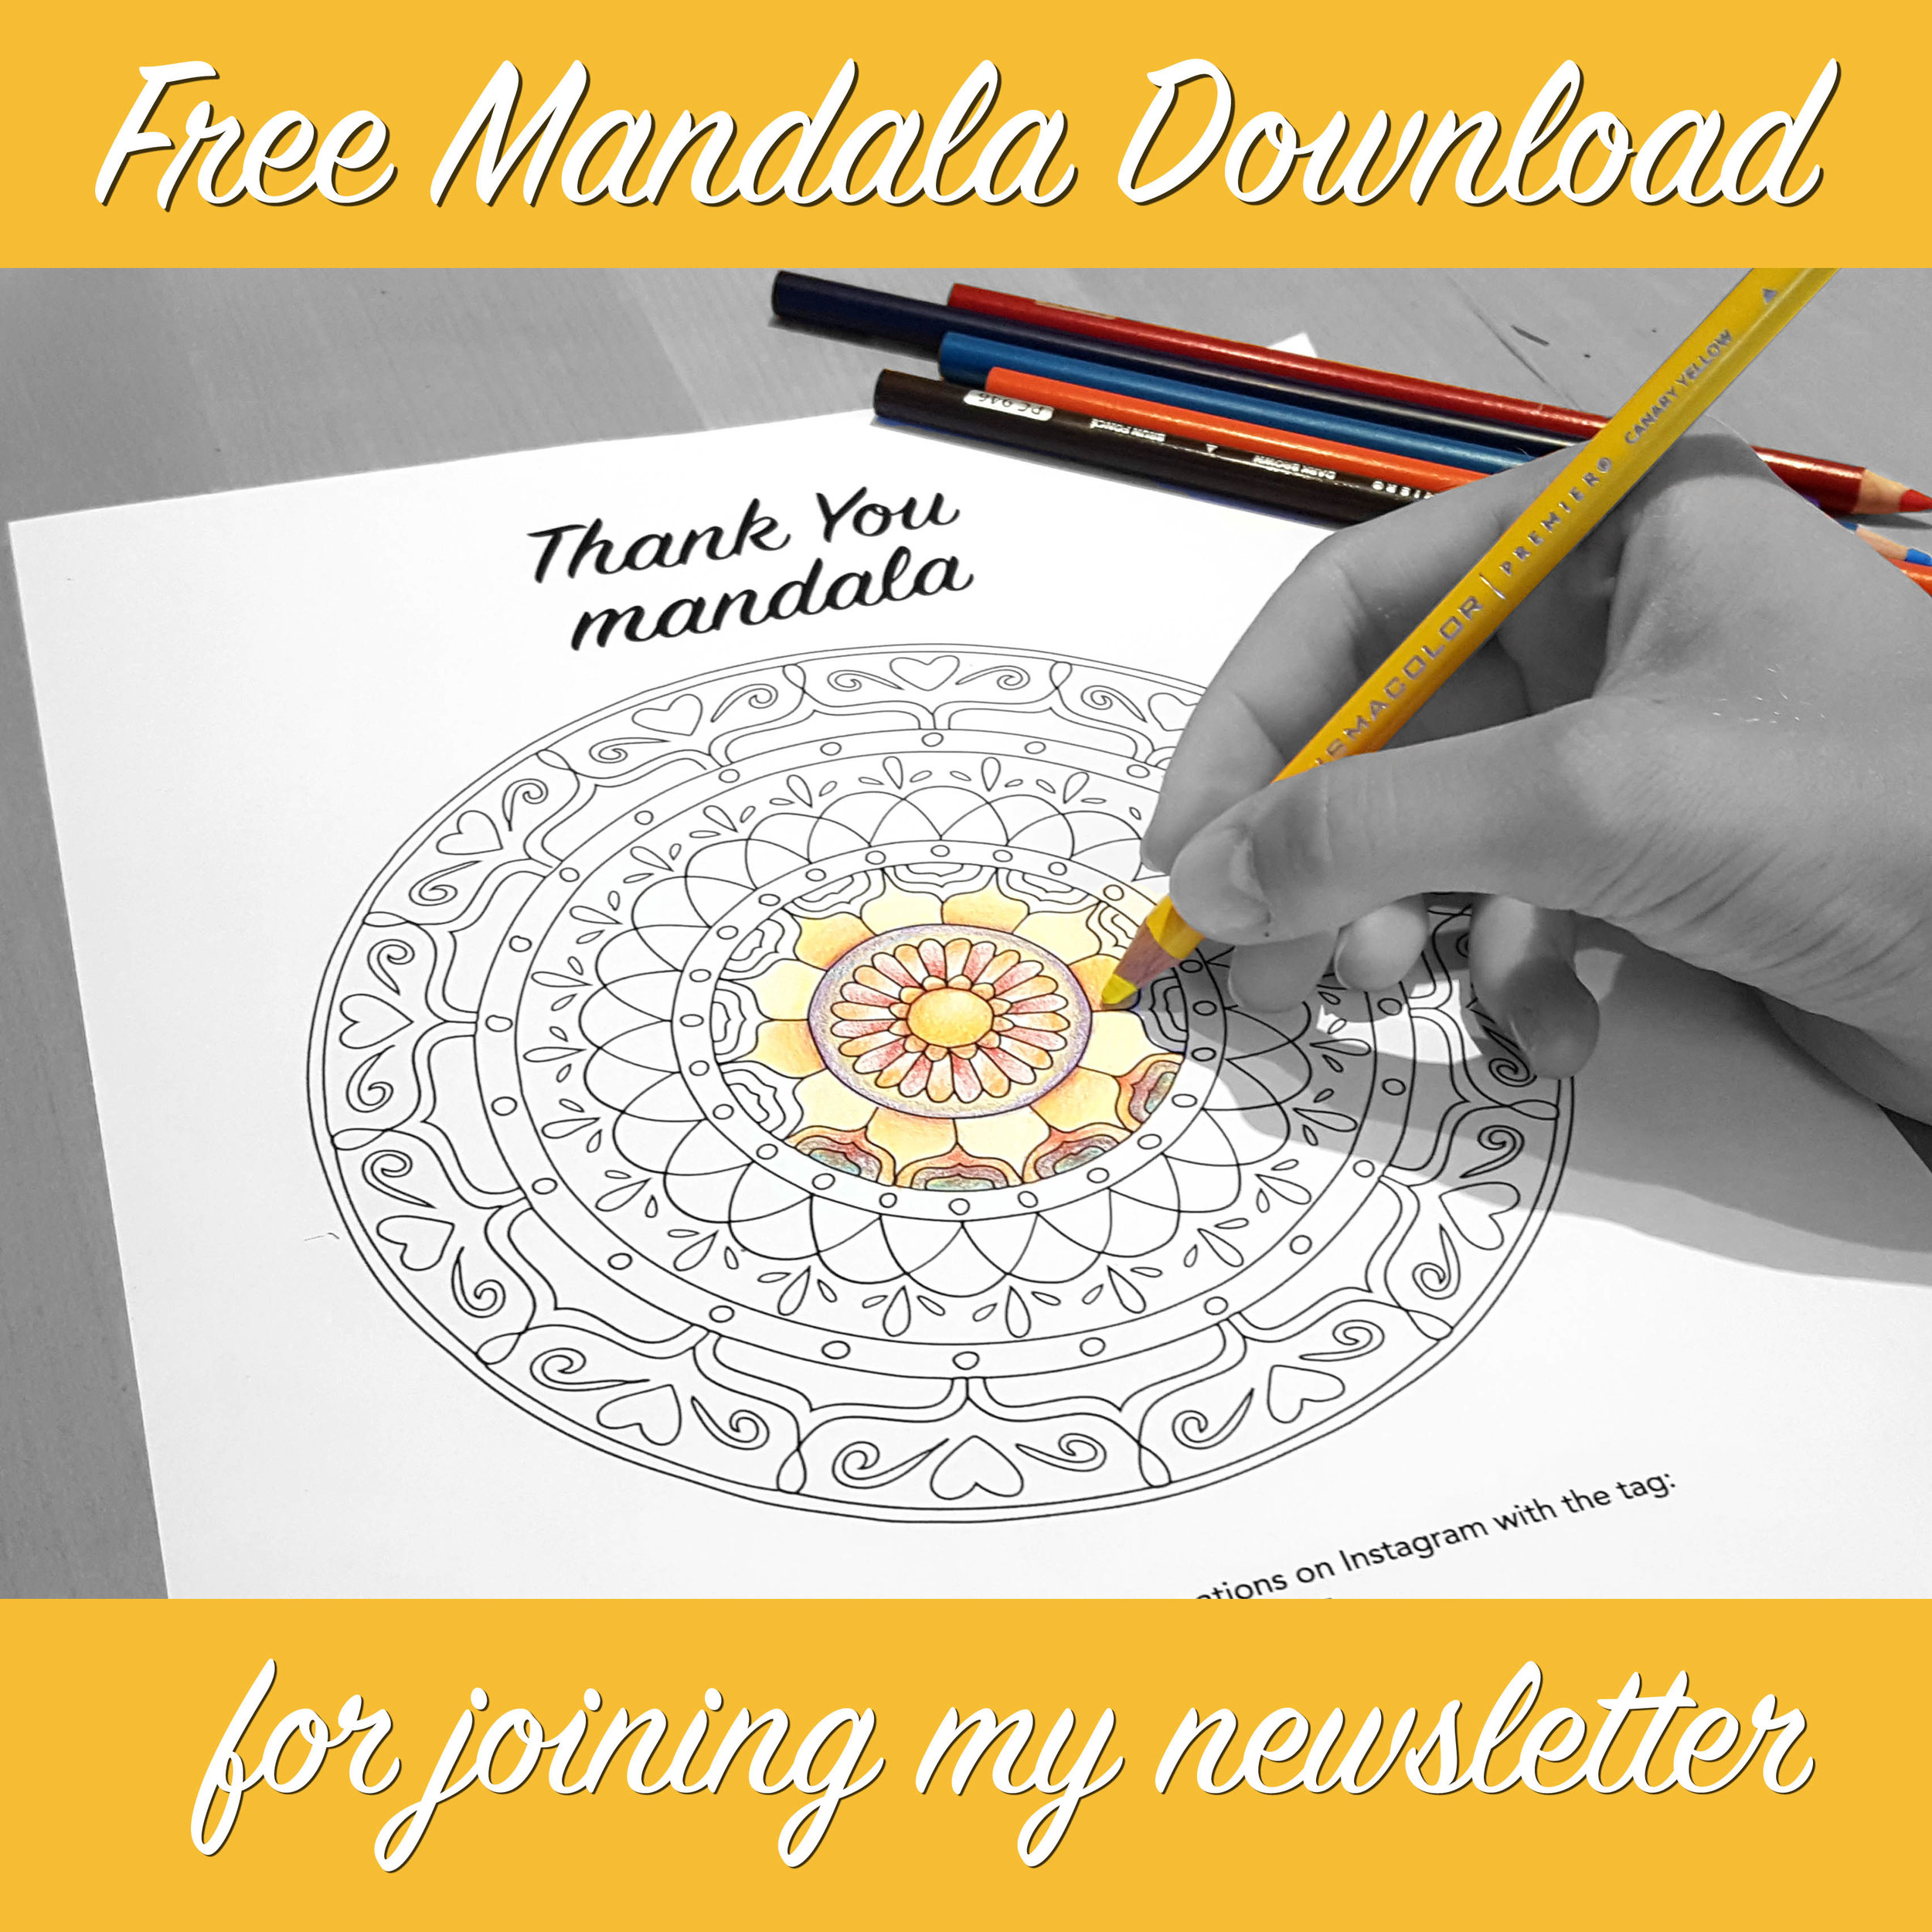 free-mandala-colouring-adult-mindfulness.jpg